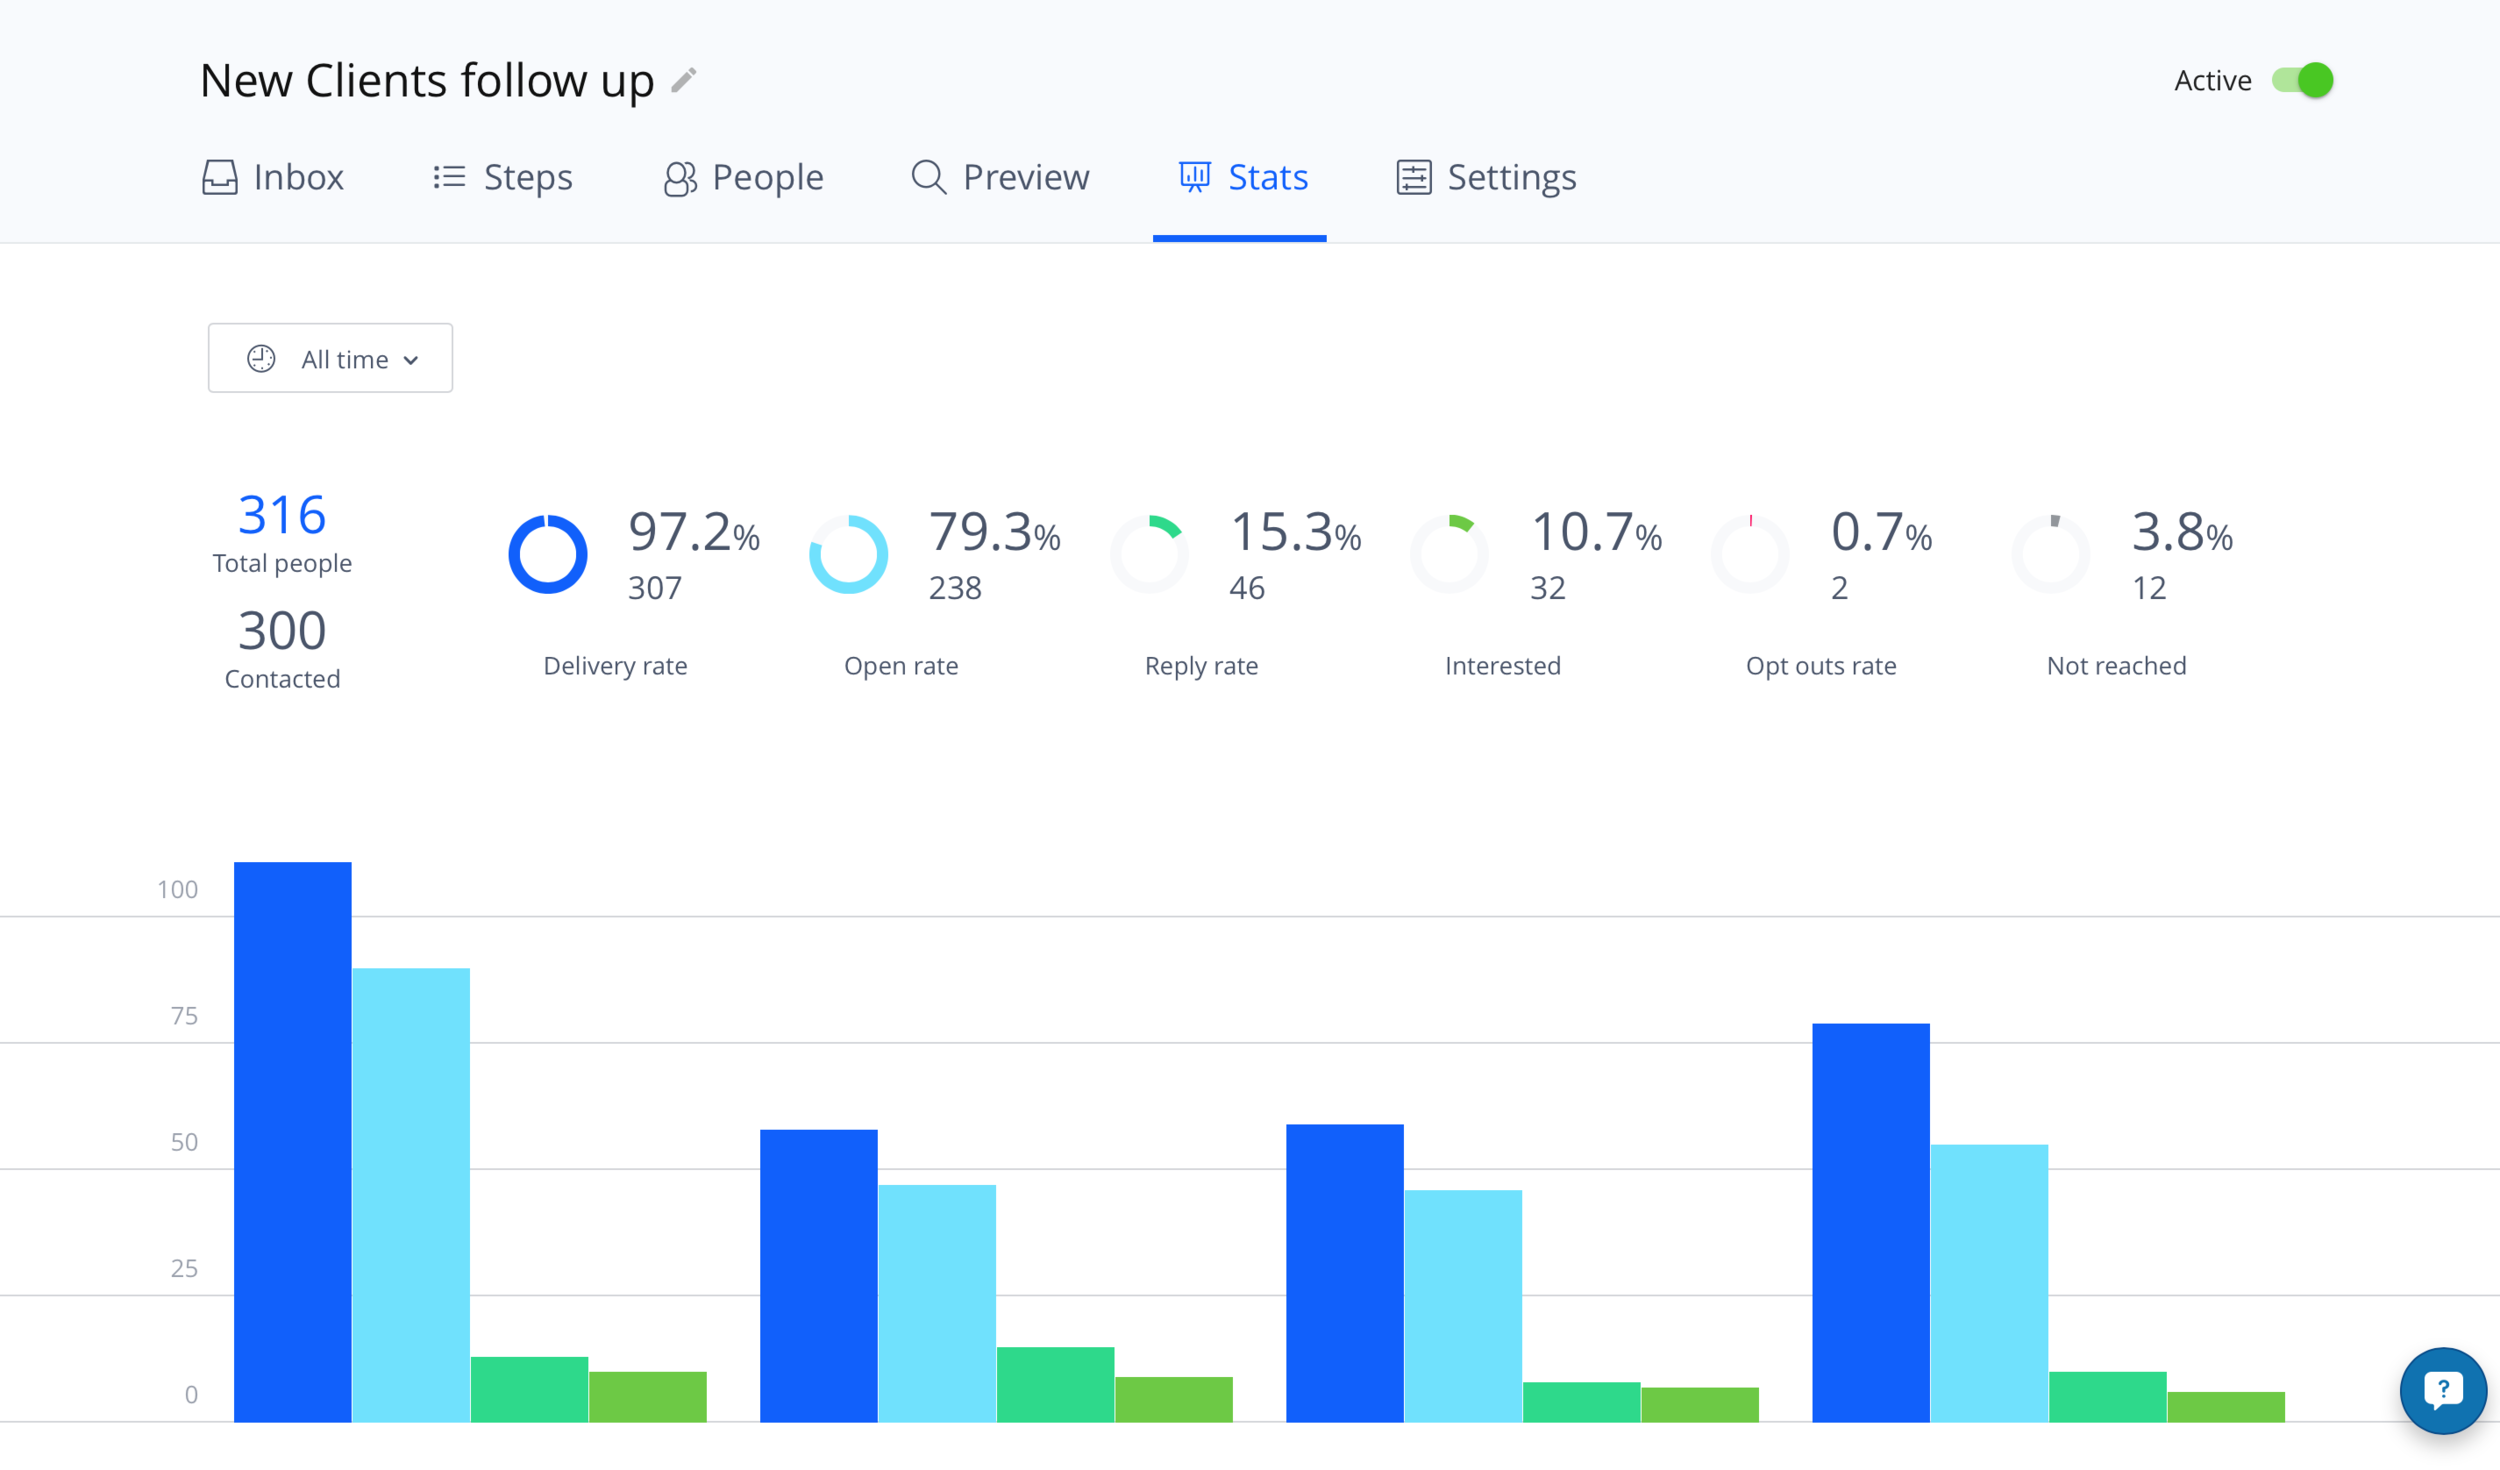 Opens & Clicks Tracking - Get comprehensive statistics on performance metrics like Deliveries, Opens and Clicks for every email in a sequence along with insight into the overall performance of your campaign.